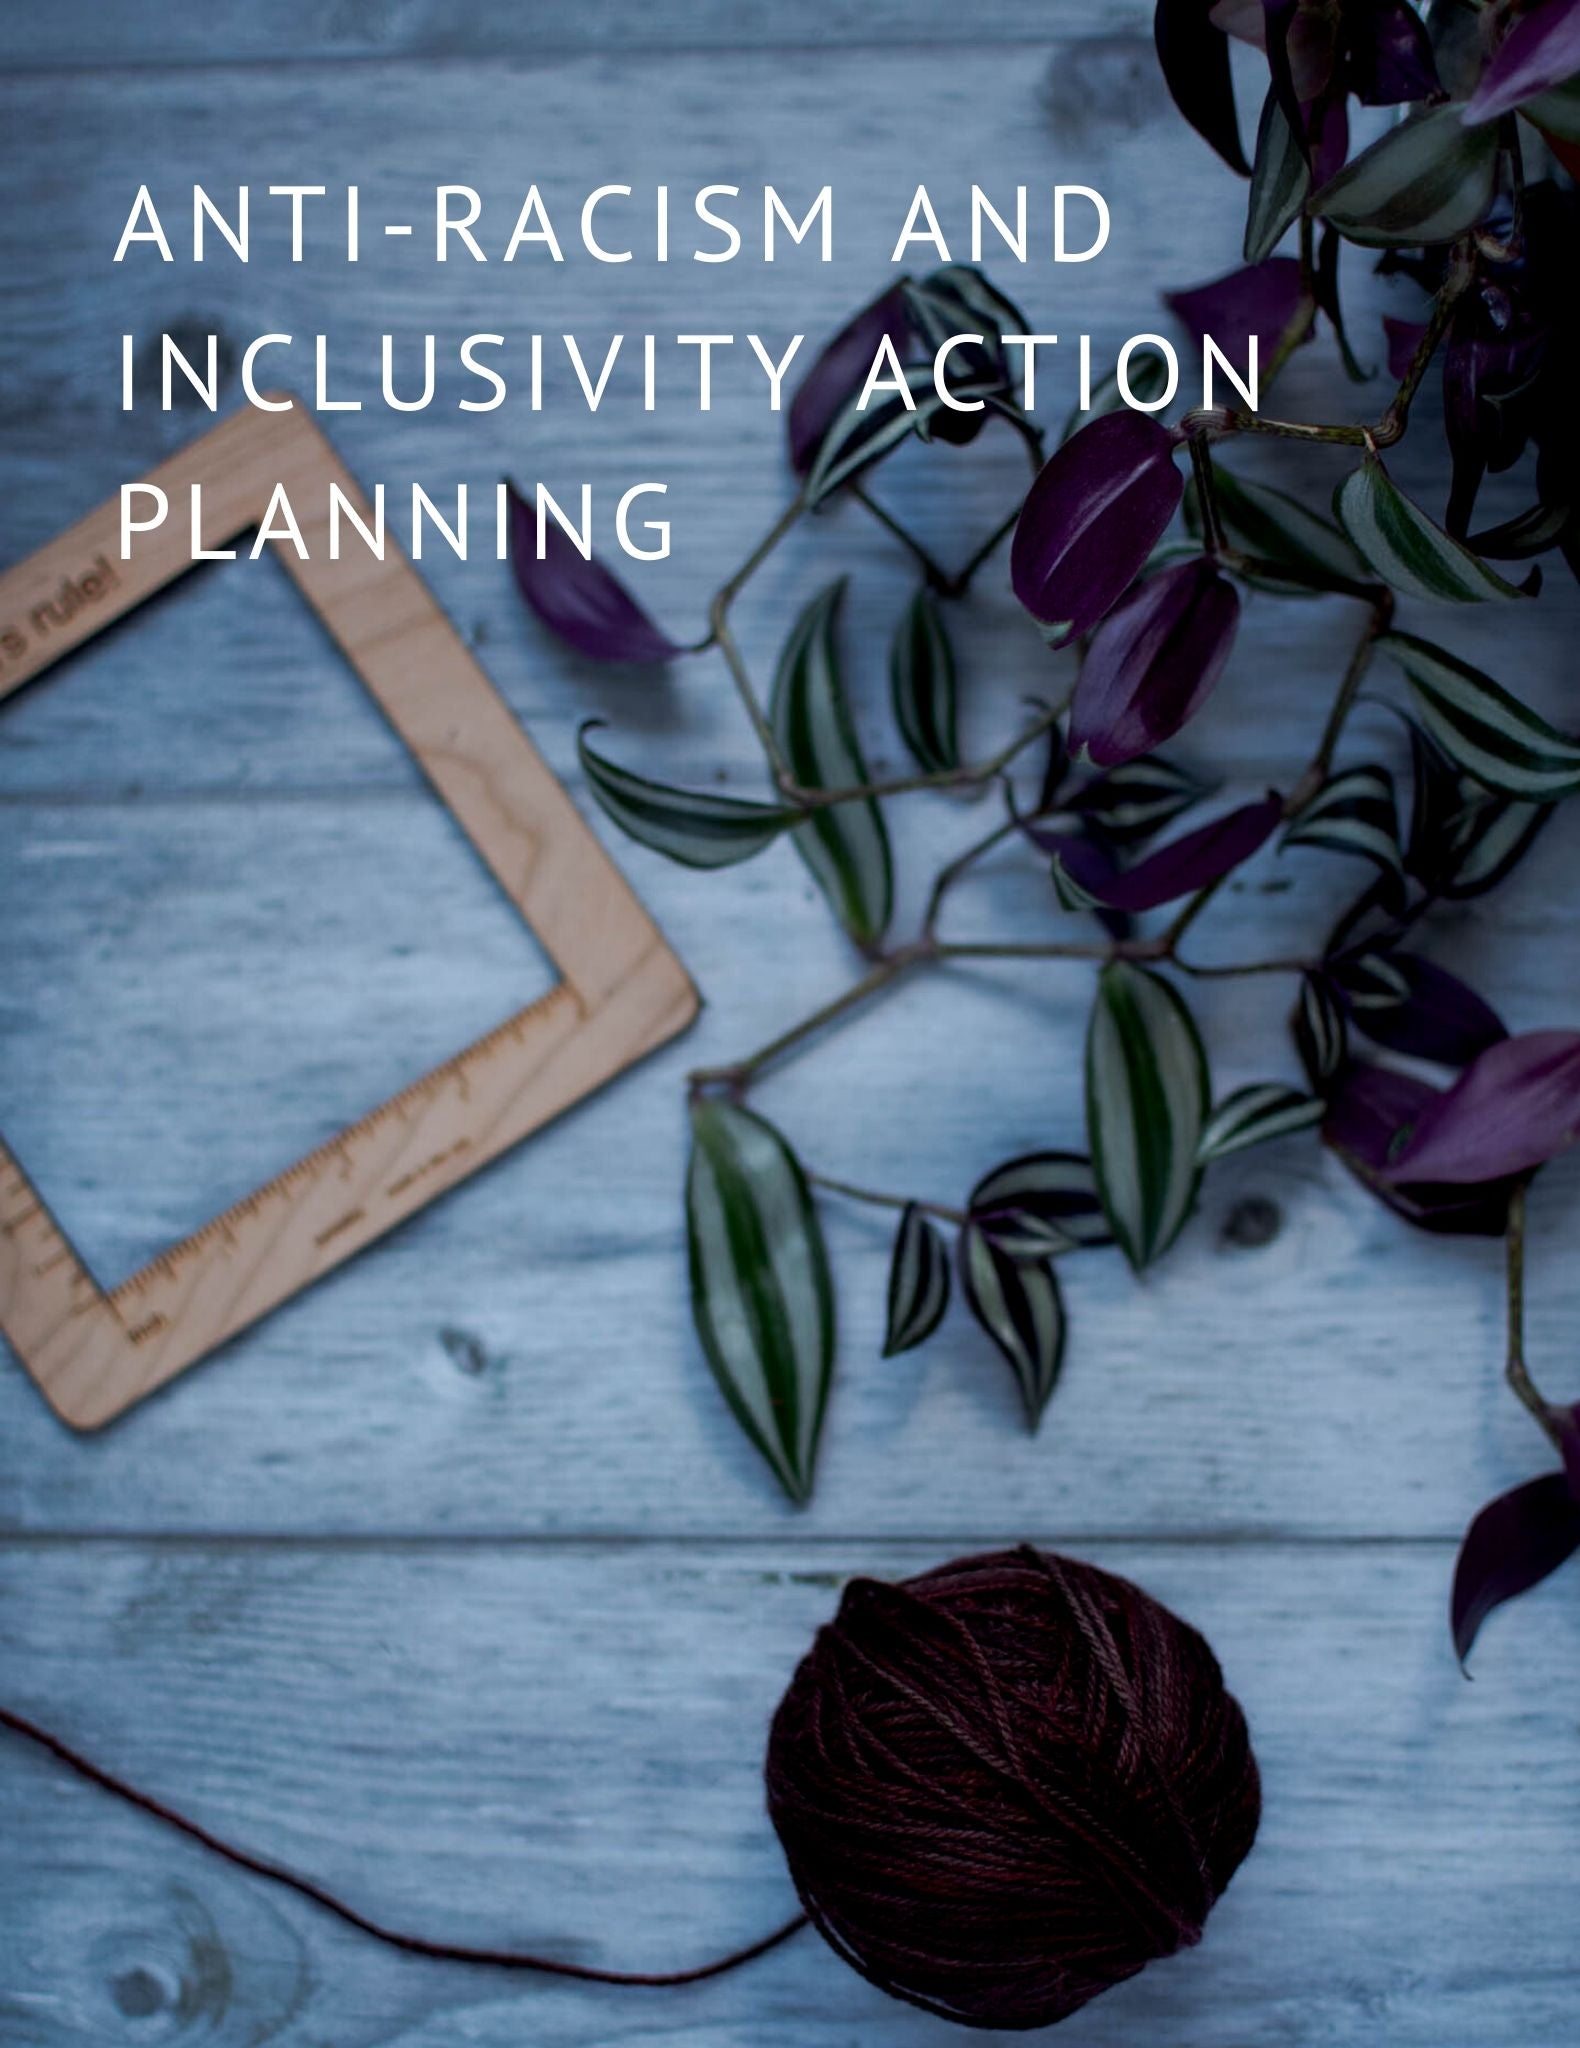 Anti-racism and inclusivity action planning